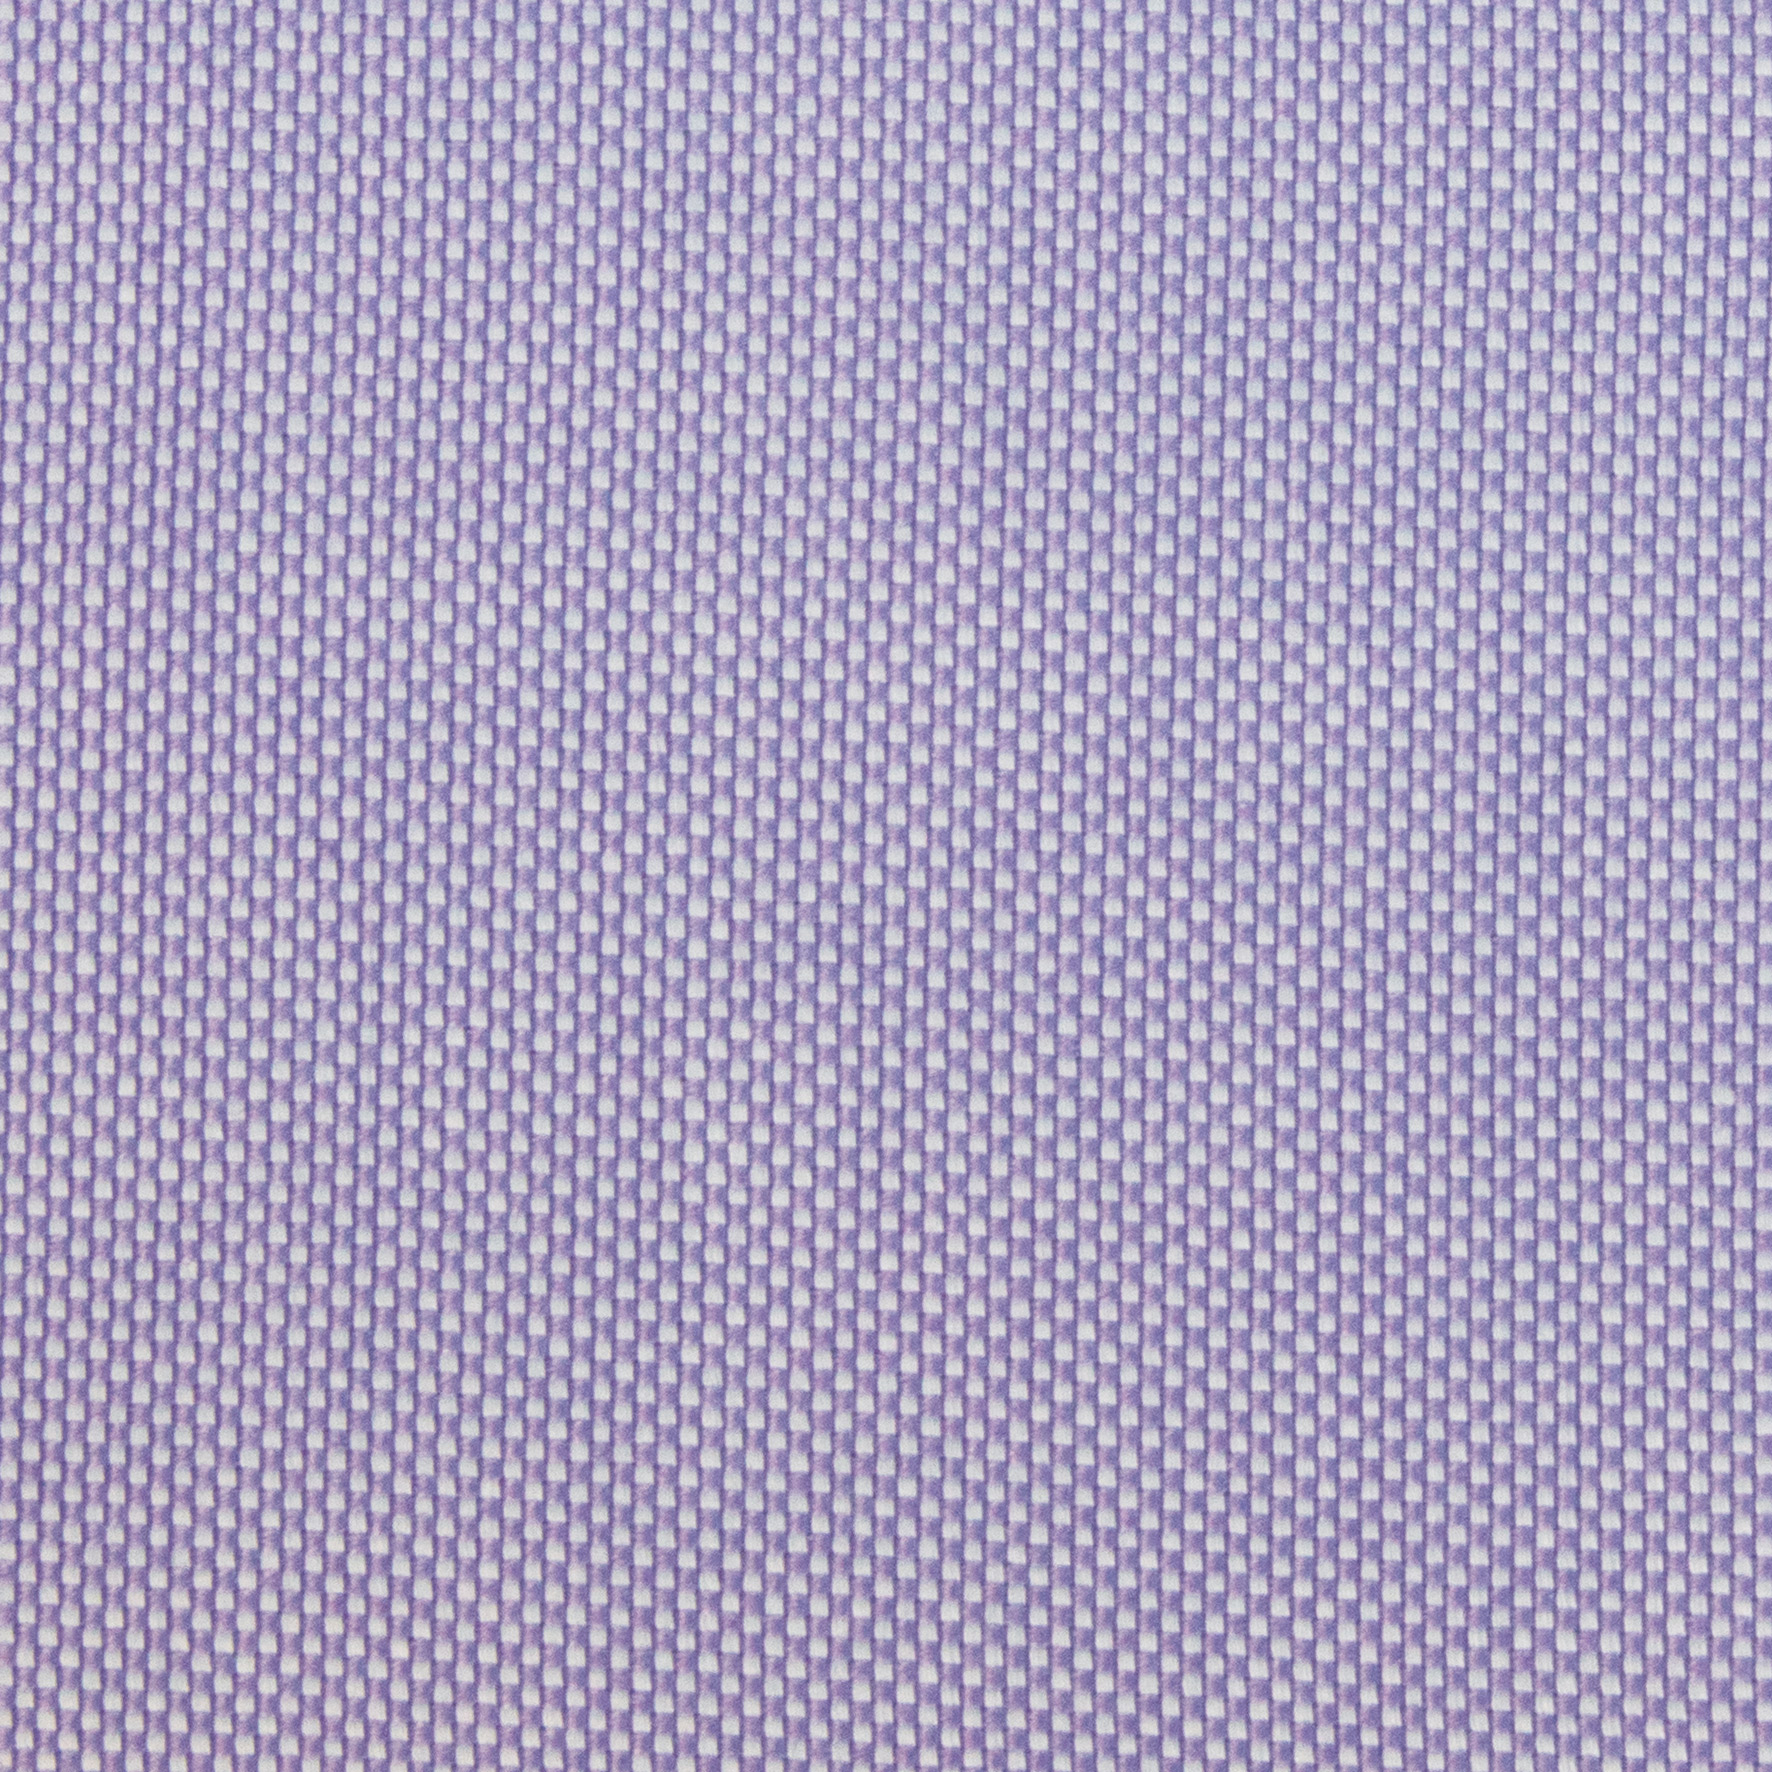 Buy tailor made shirts online - Antonio Range - Lilac Diamond Weave